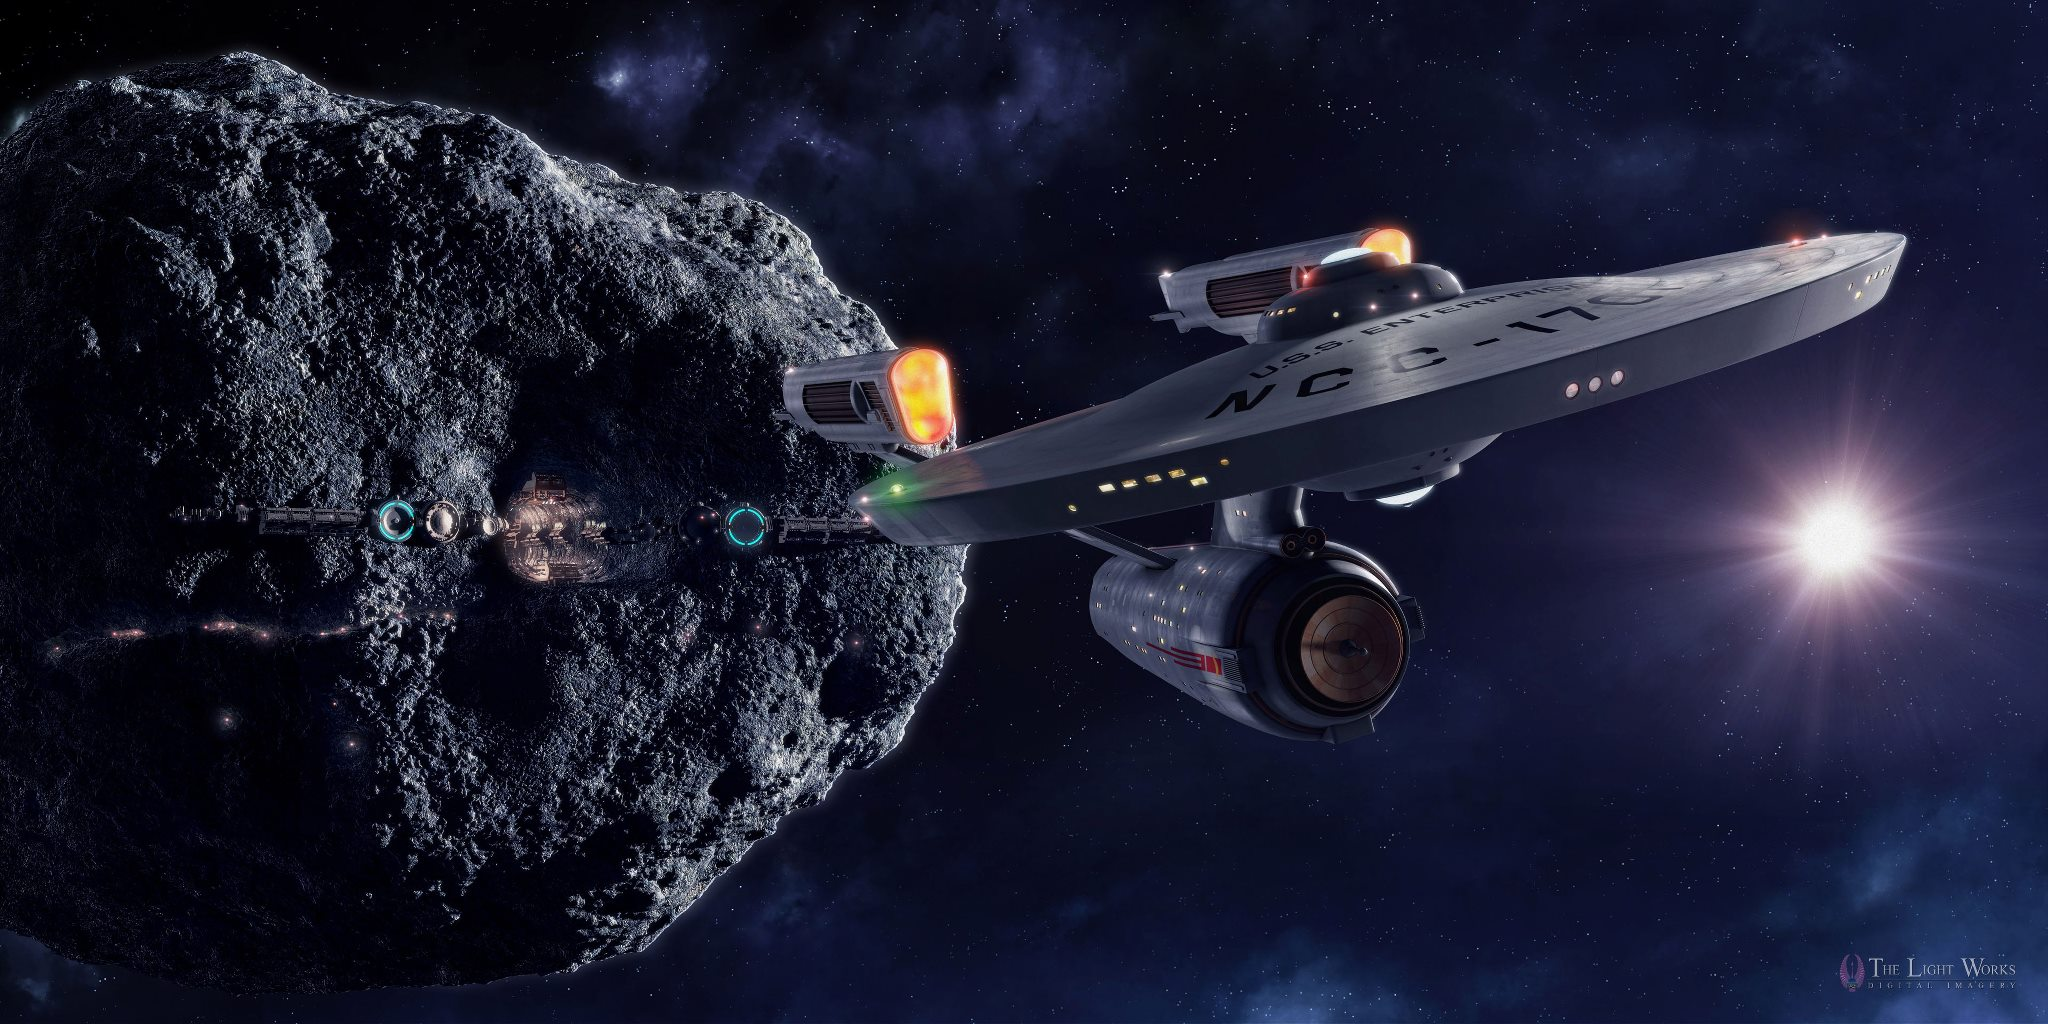 Uss Enterprise Ncc 1701 Wallpaper And Background Image